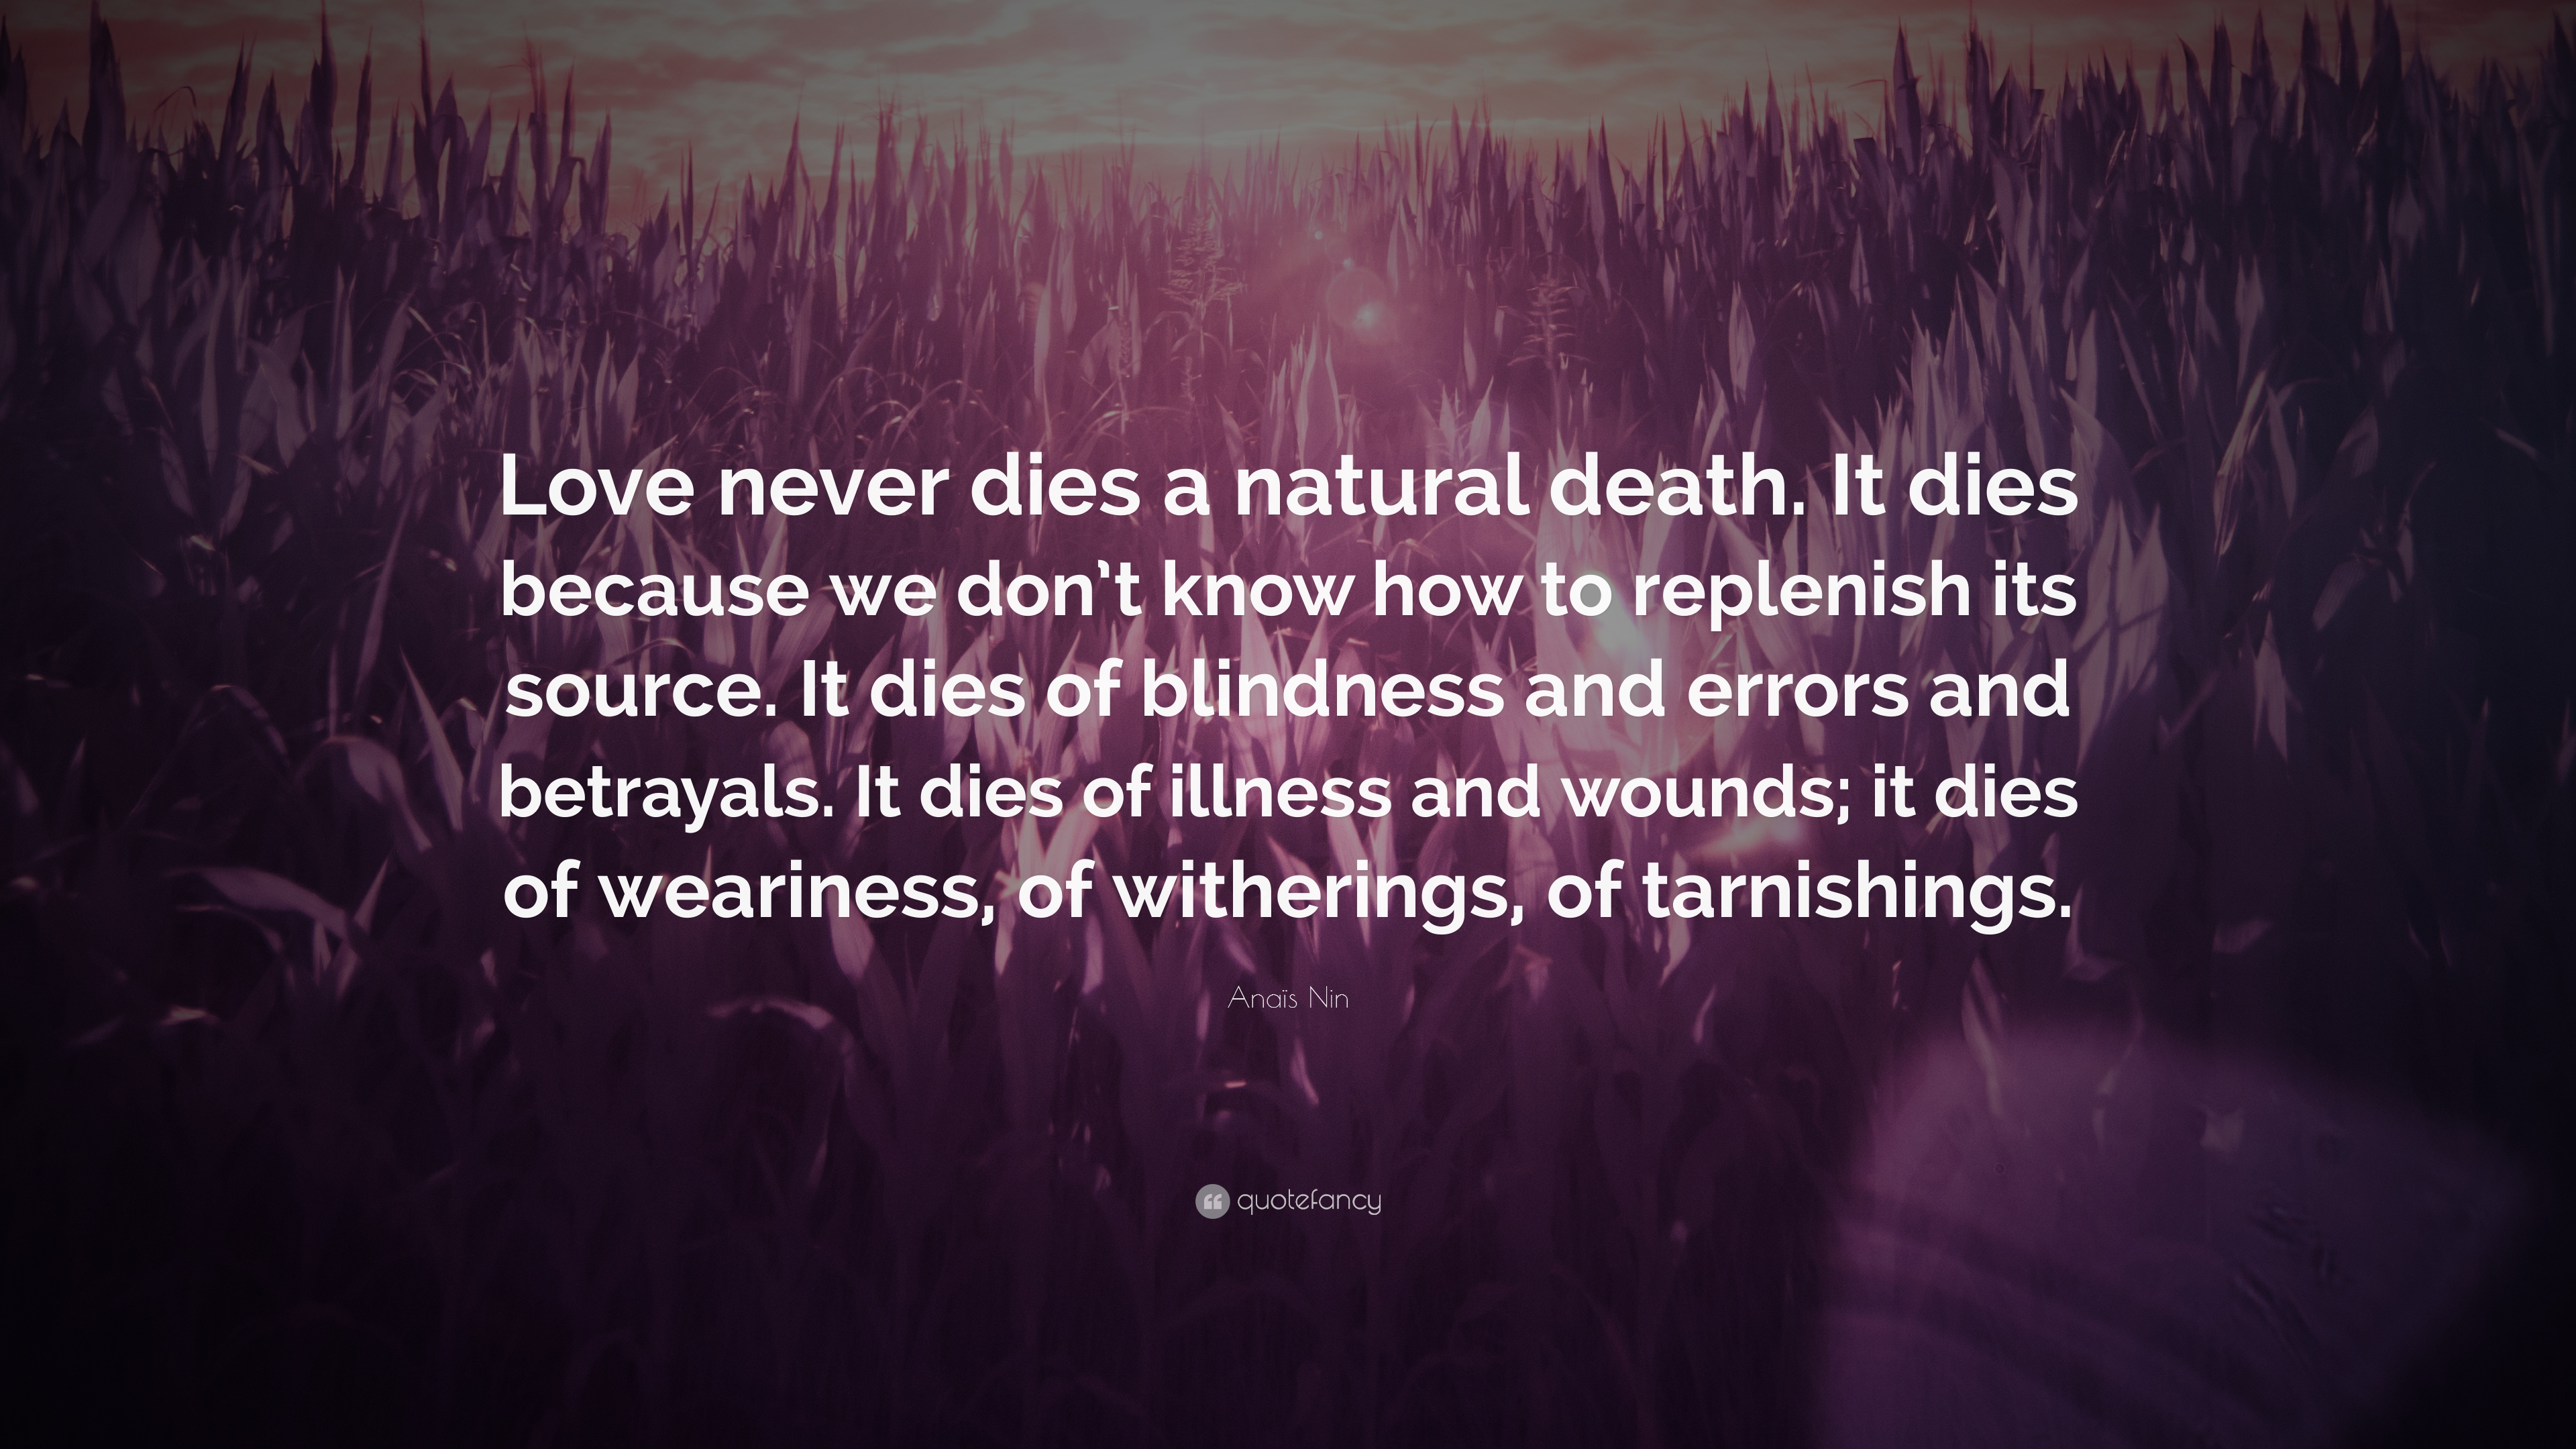 Ana?s Nin Quote: ?Love never dies a natural death. It dies because we don t know how to ...